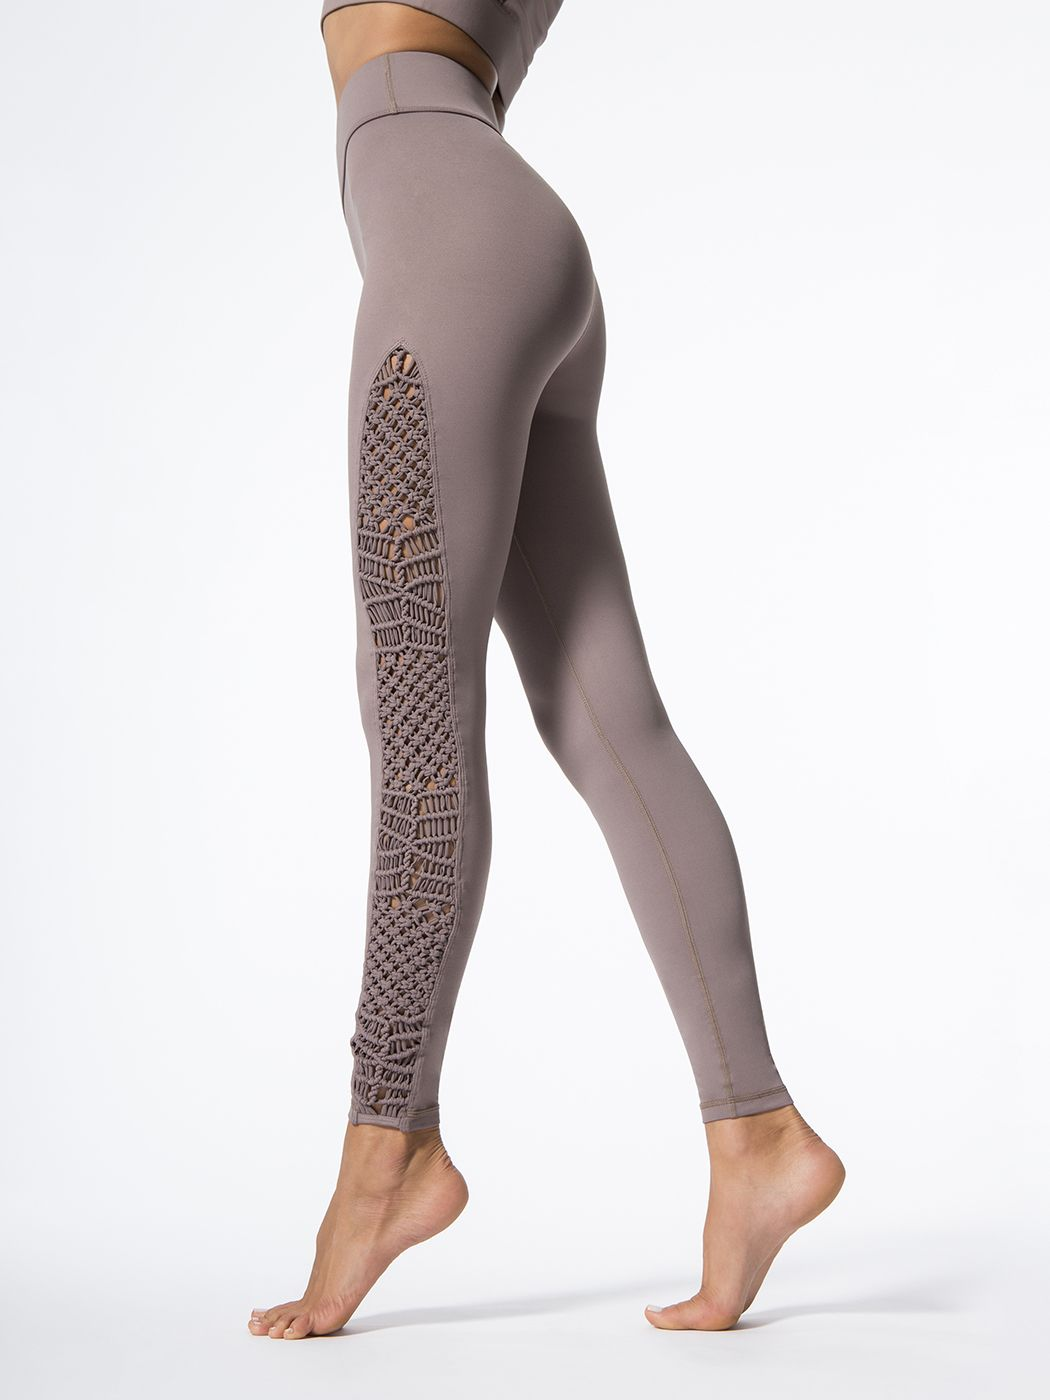 d7fe9e01d6a9f The Tanjung in beige from the Sayang Collection by Carbon38 is an  antimicrobial, moisture-wicking and wrinkle-resistant legging with a  high-rise waistline.